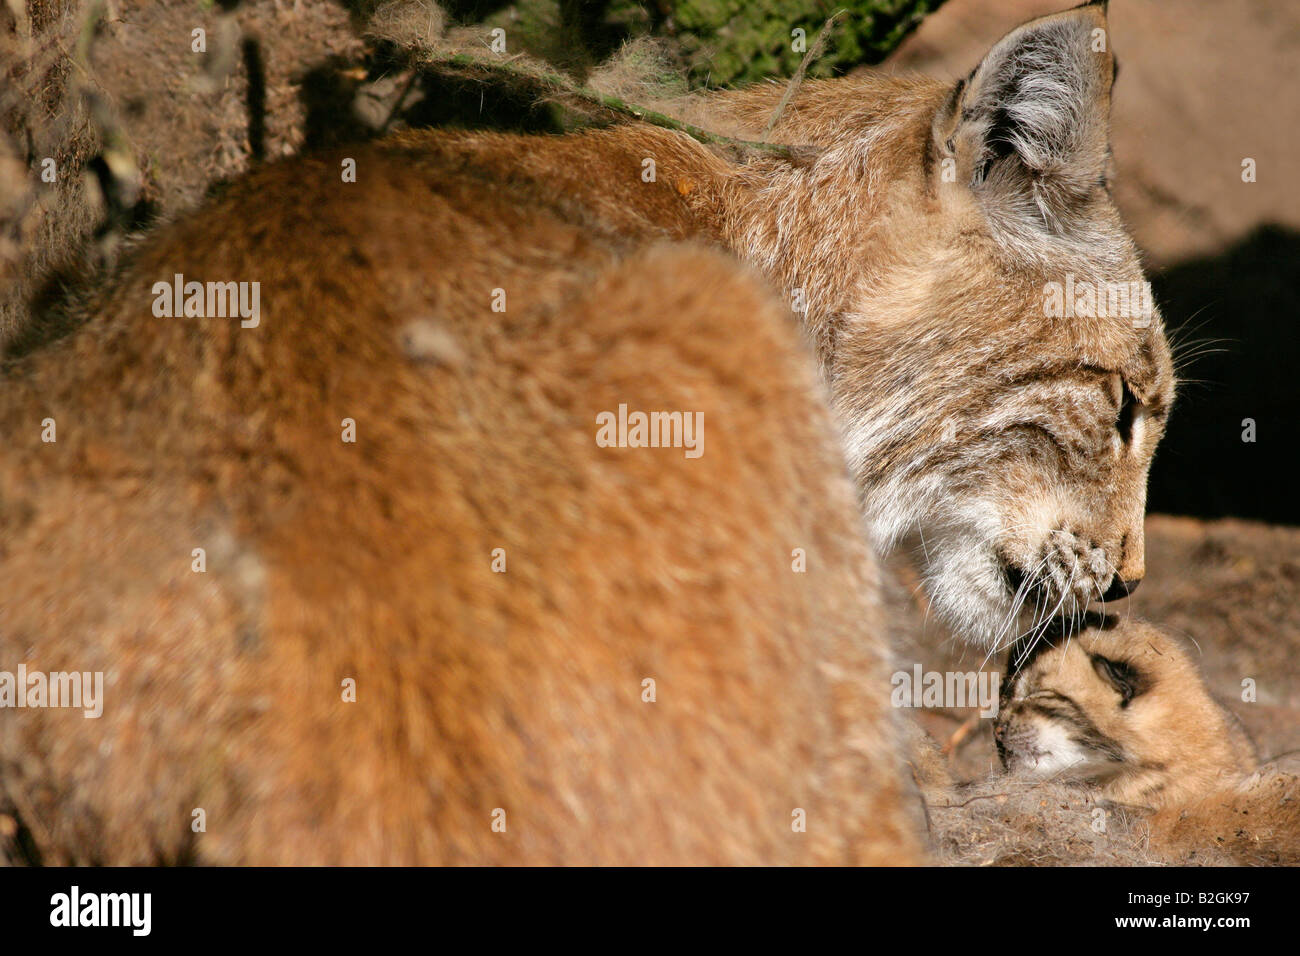 eurasian lynx dam catkin mother motherly love close up Lynx lynx cuddling bavaria germany pair couple - Stock Image